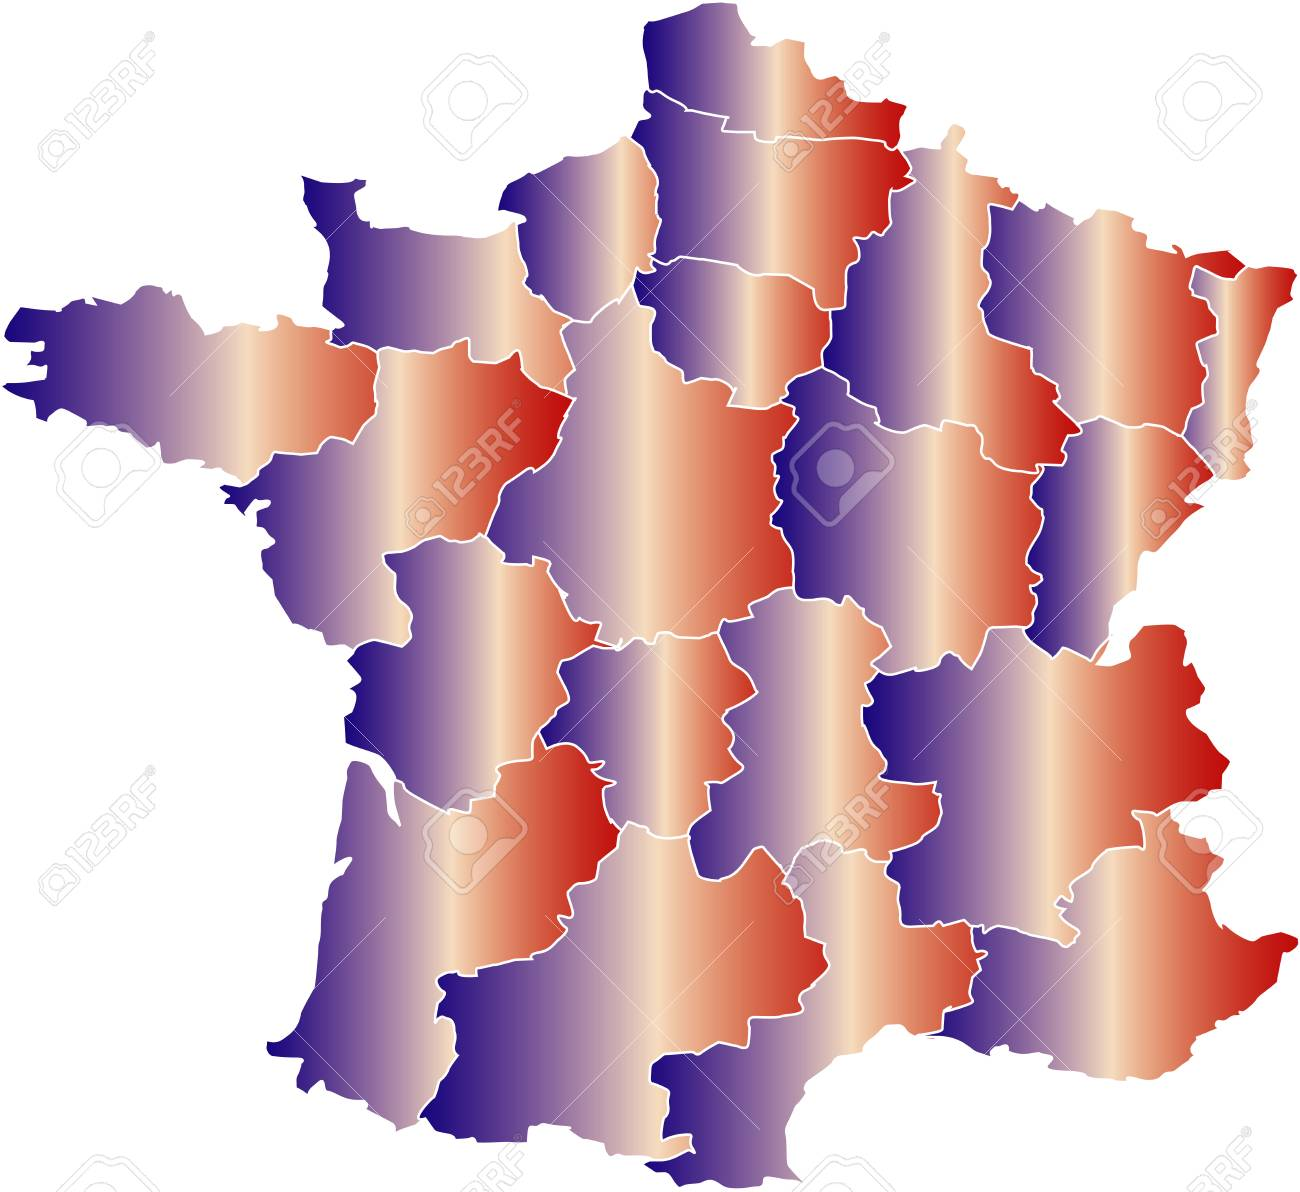 There is a map of France country Stock Vector - 4292600